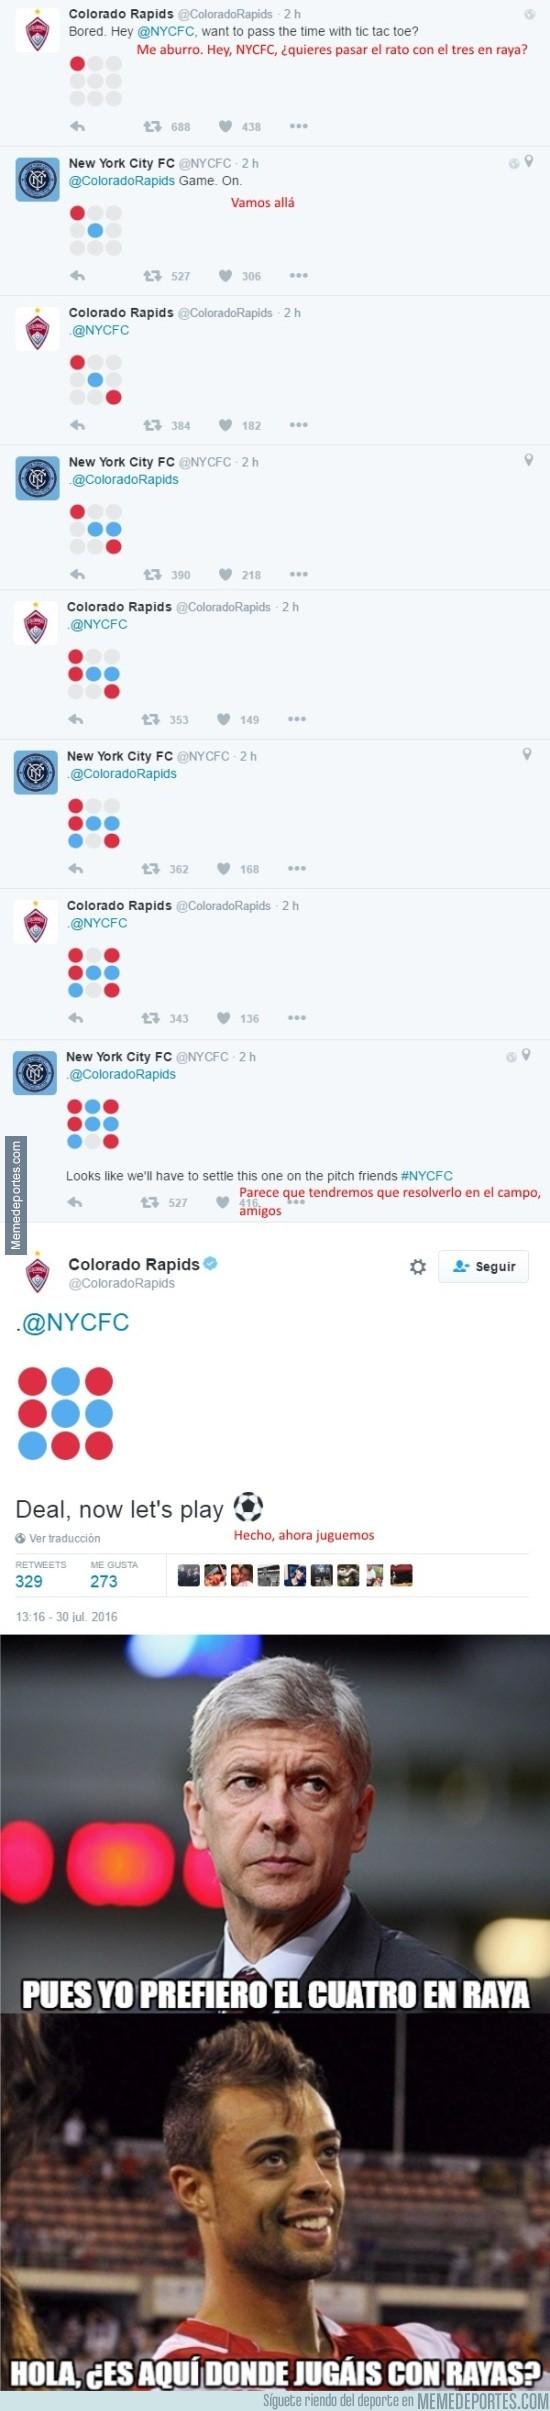 893760 - La dura batalla entre el Colorado Rapids y el New York City